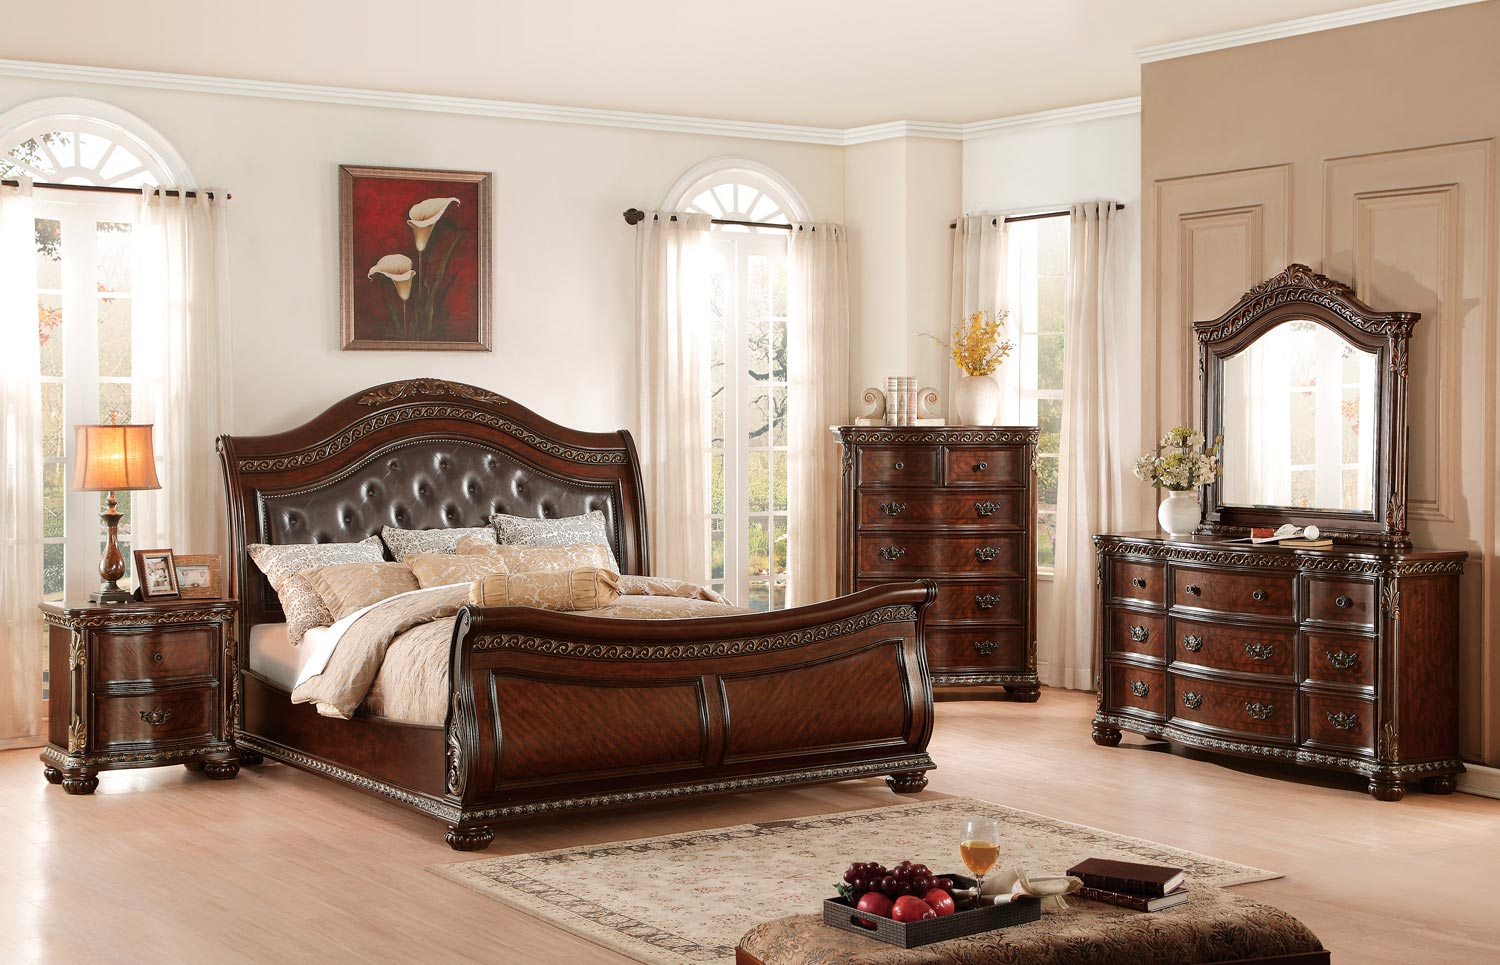 Homelegance Chaumont Upholstered Sleigh Bedroom Set - Burnished Brown Cherry